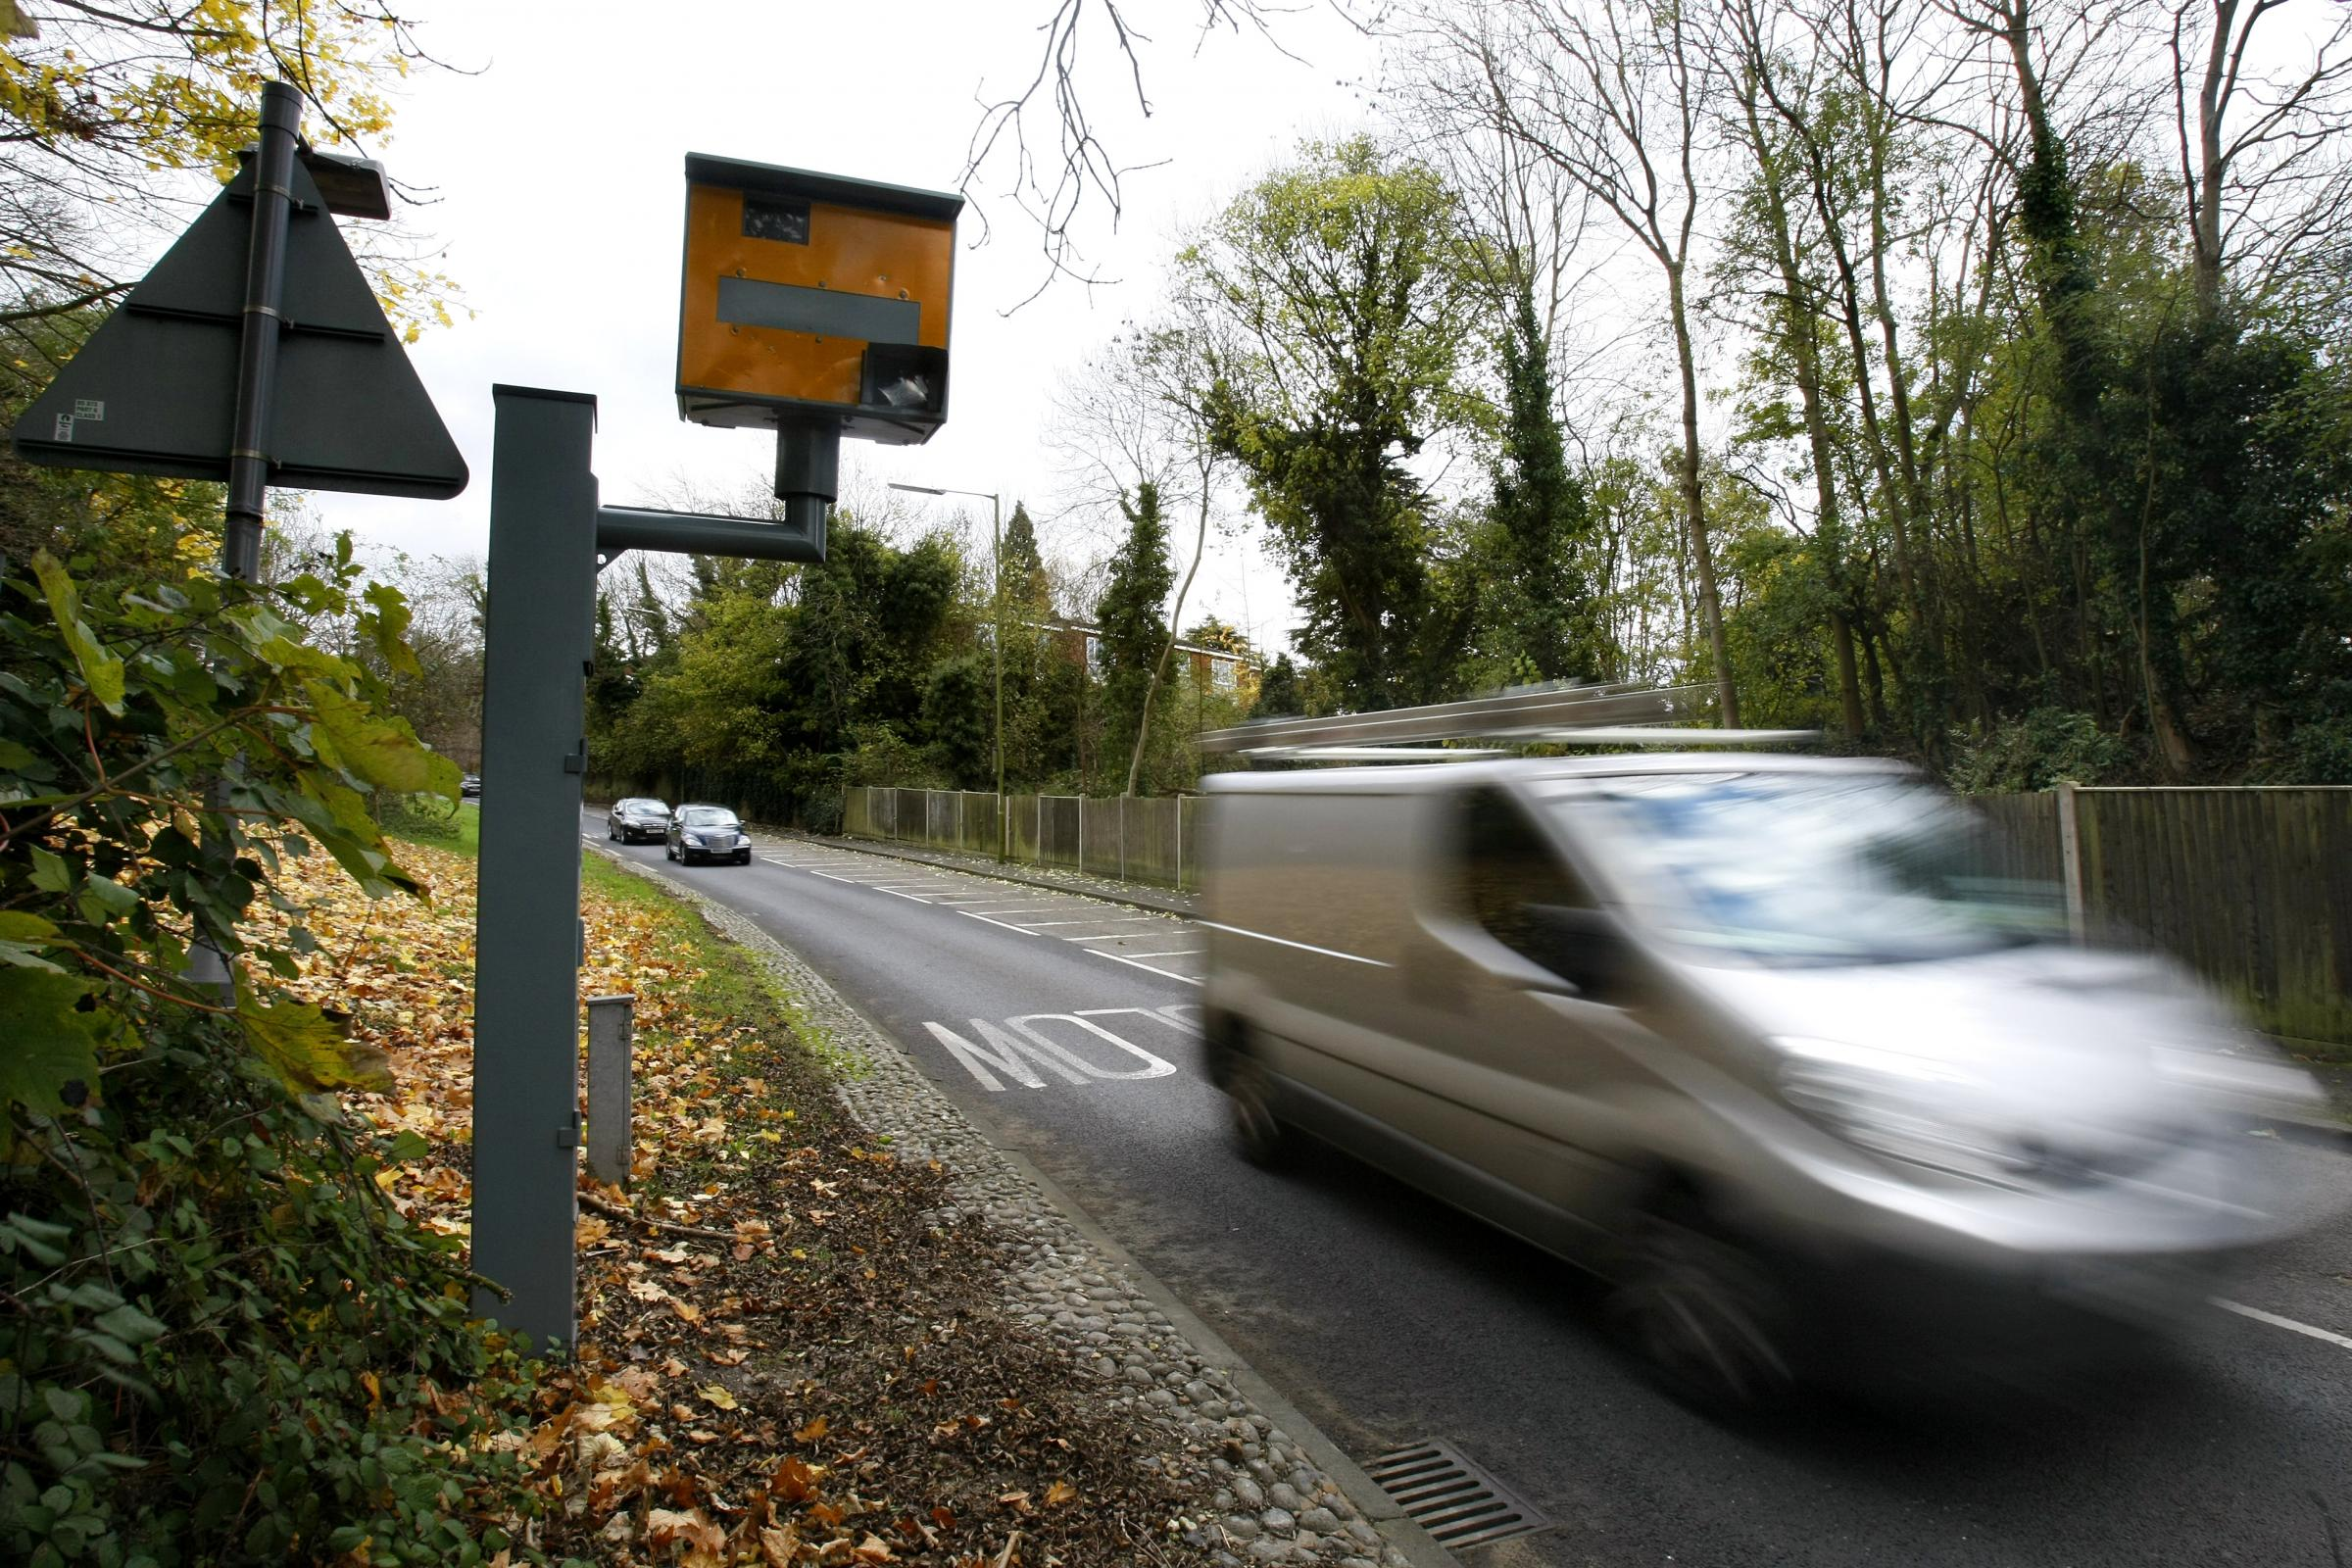 Residents call for speed calming measures